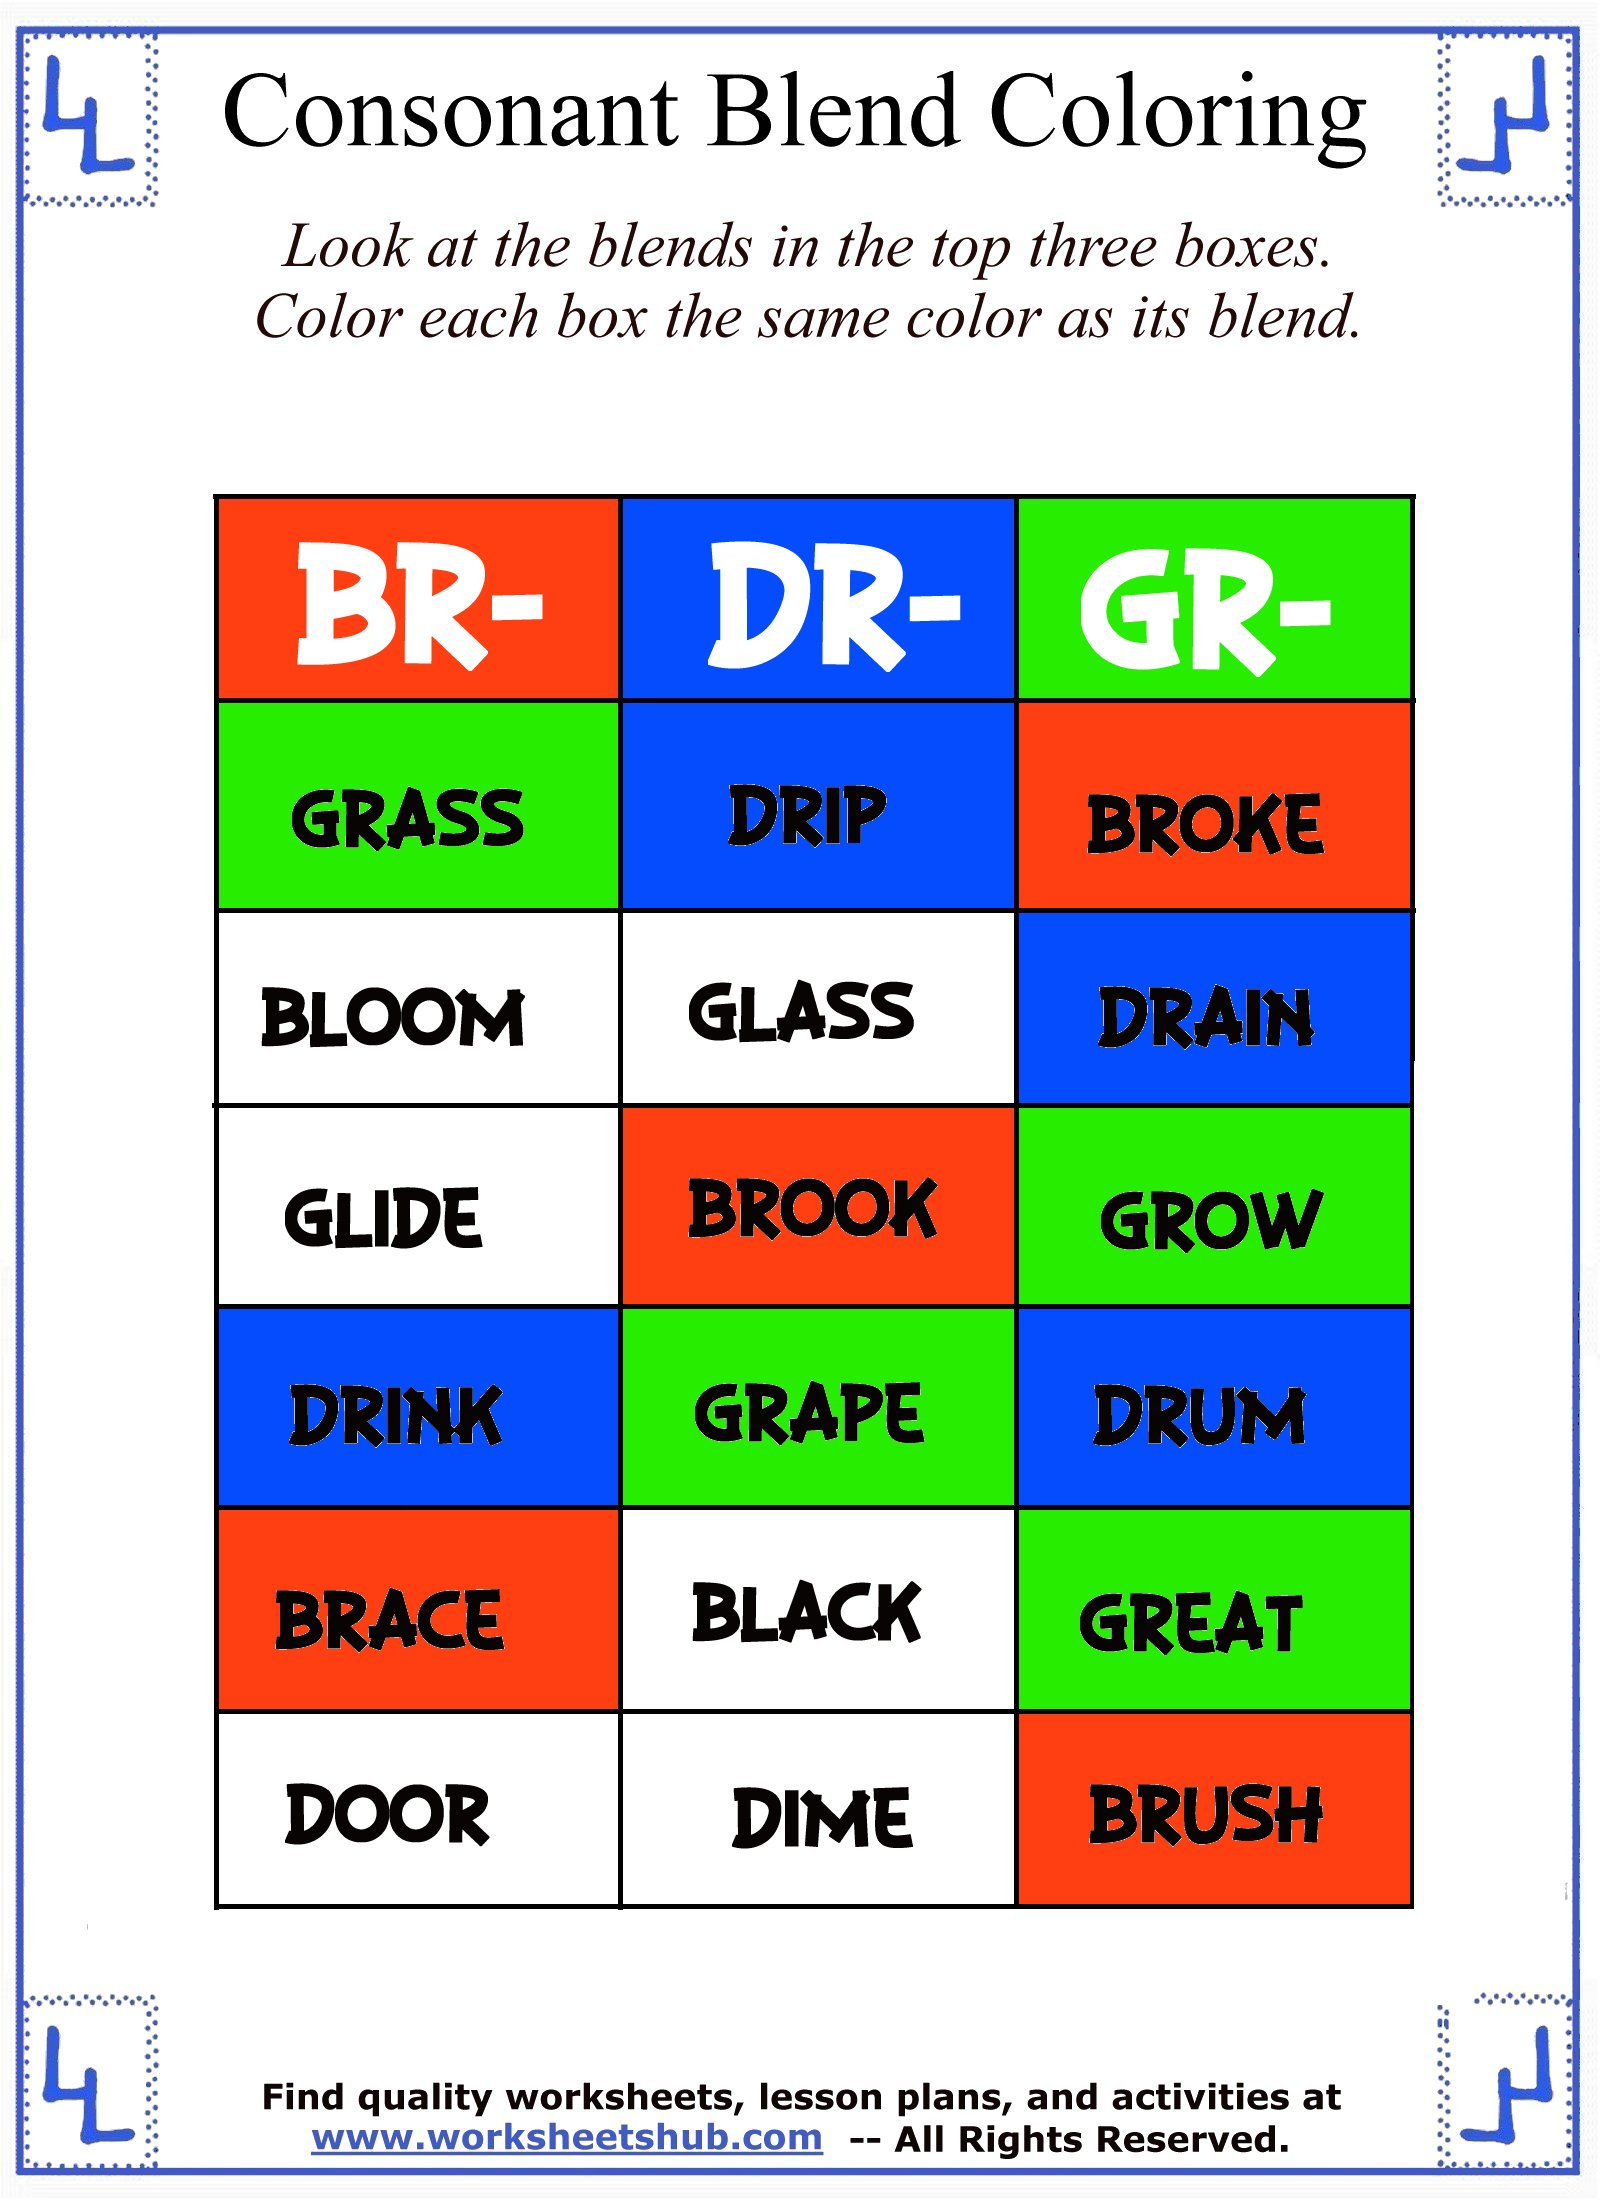 Worksheet Consonant Blend Worksheets Worksheet Fun